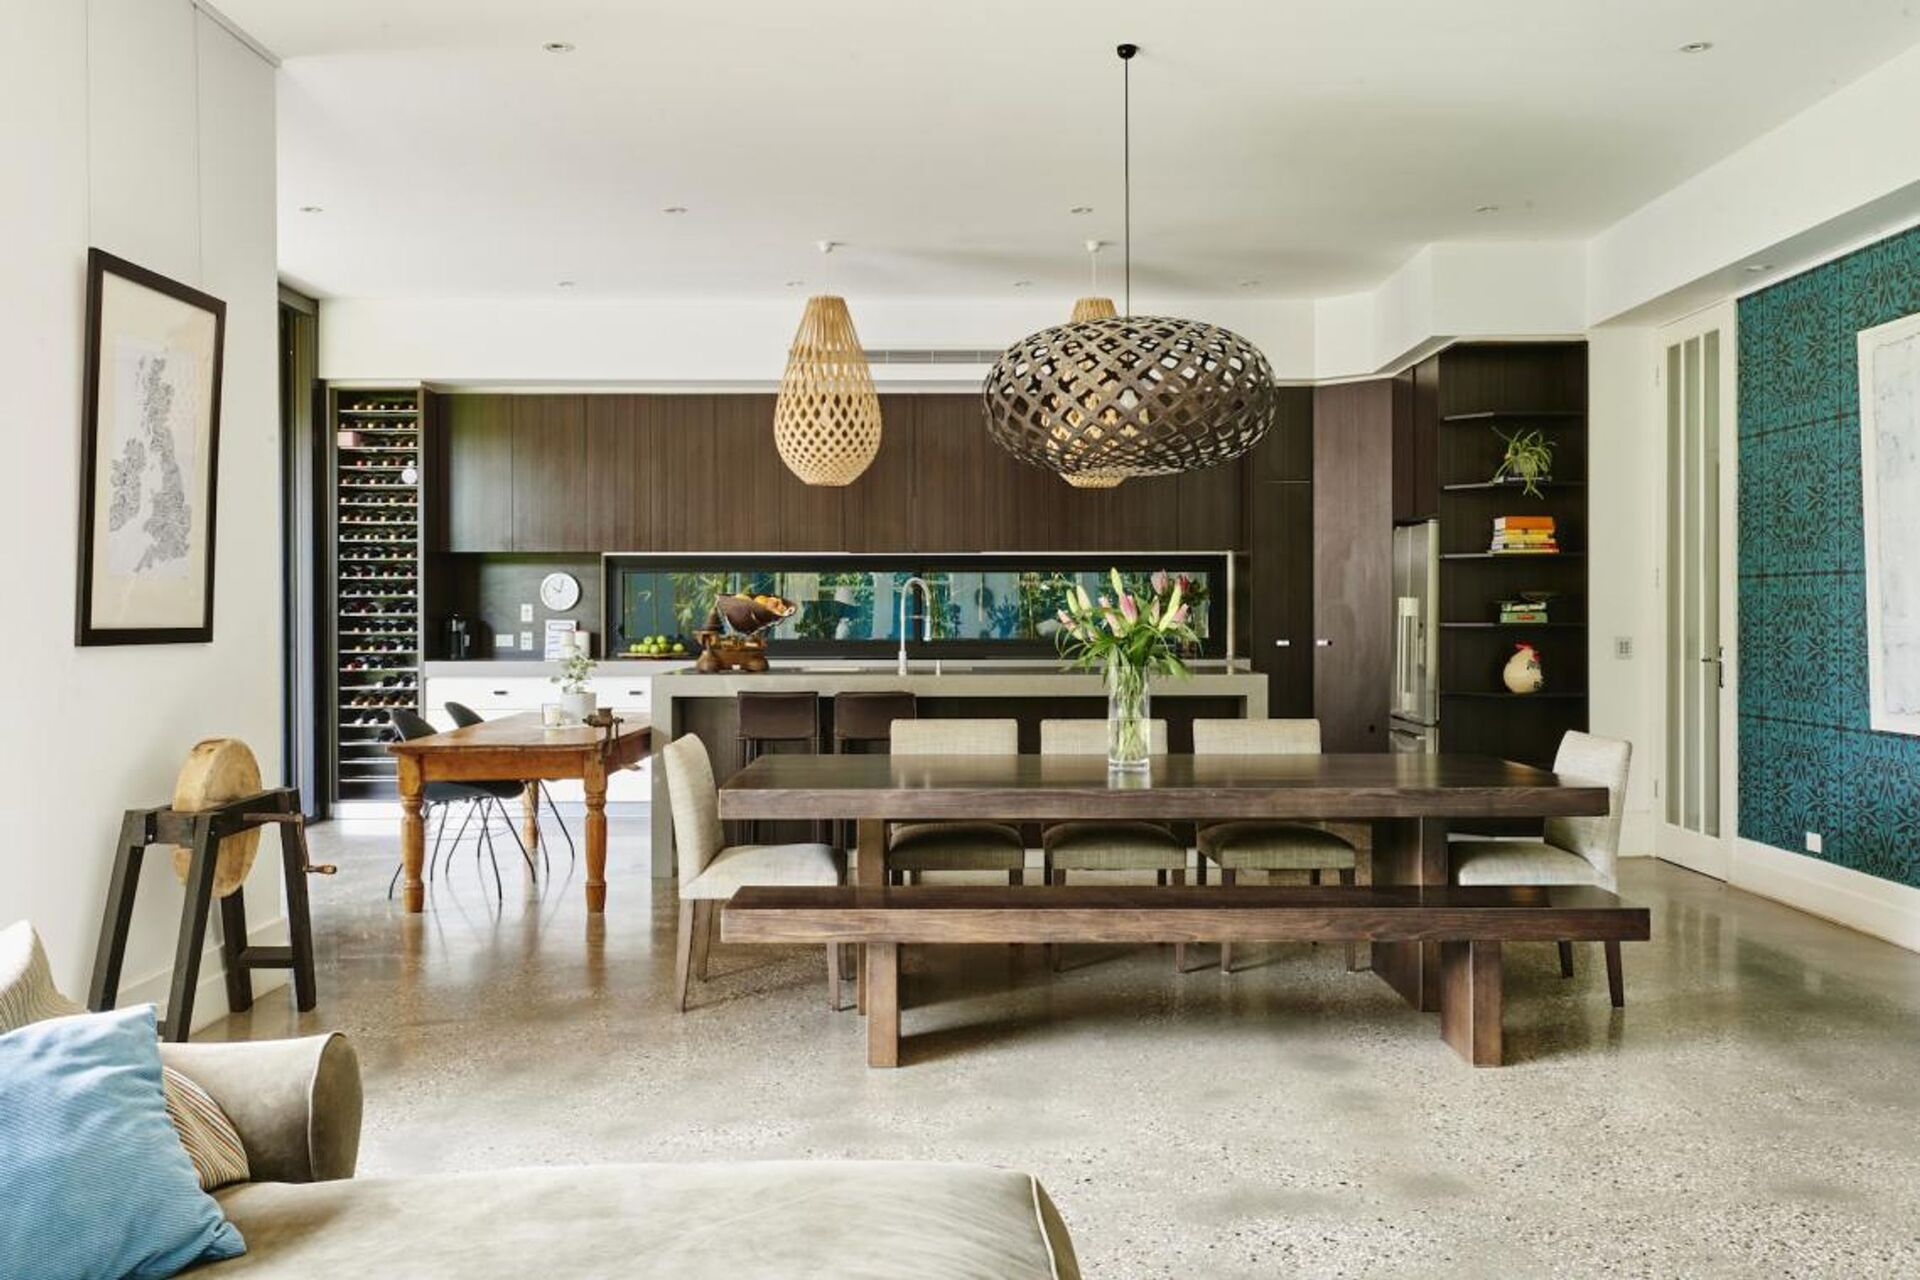 huge wooden table in dining space